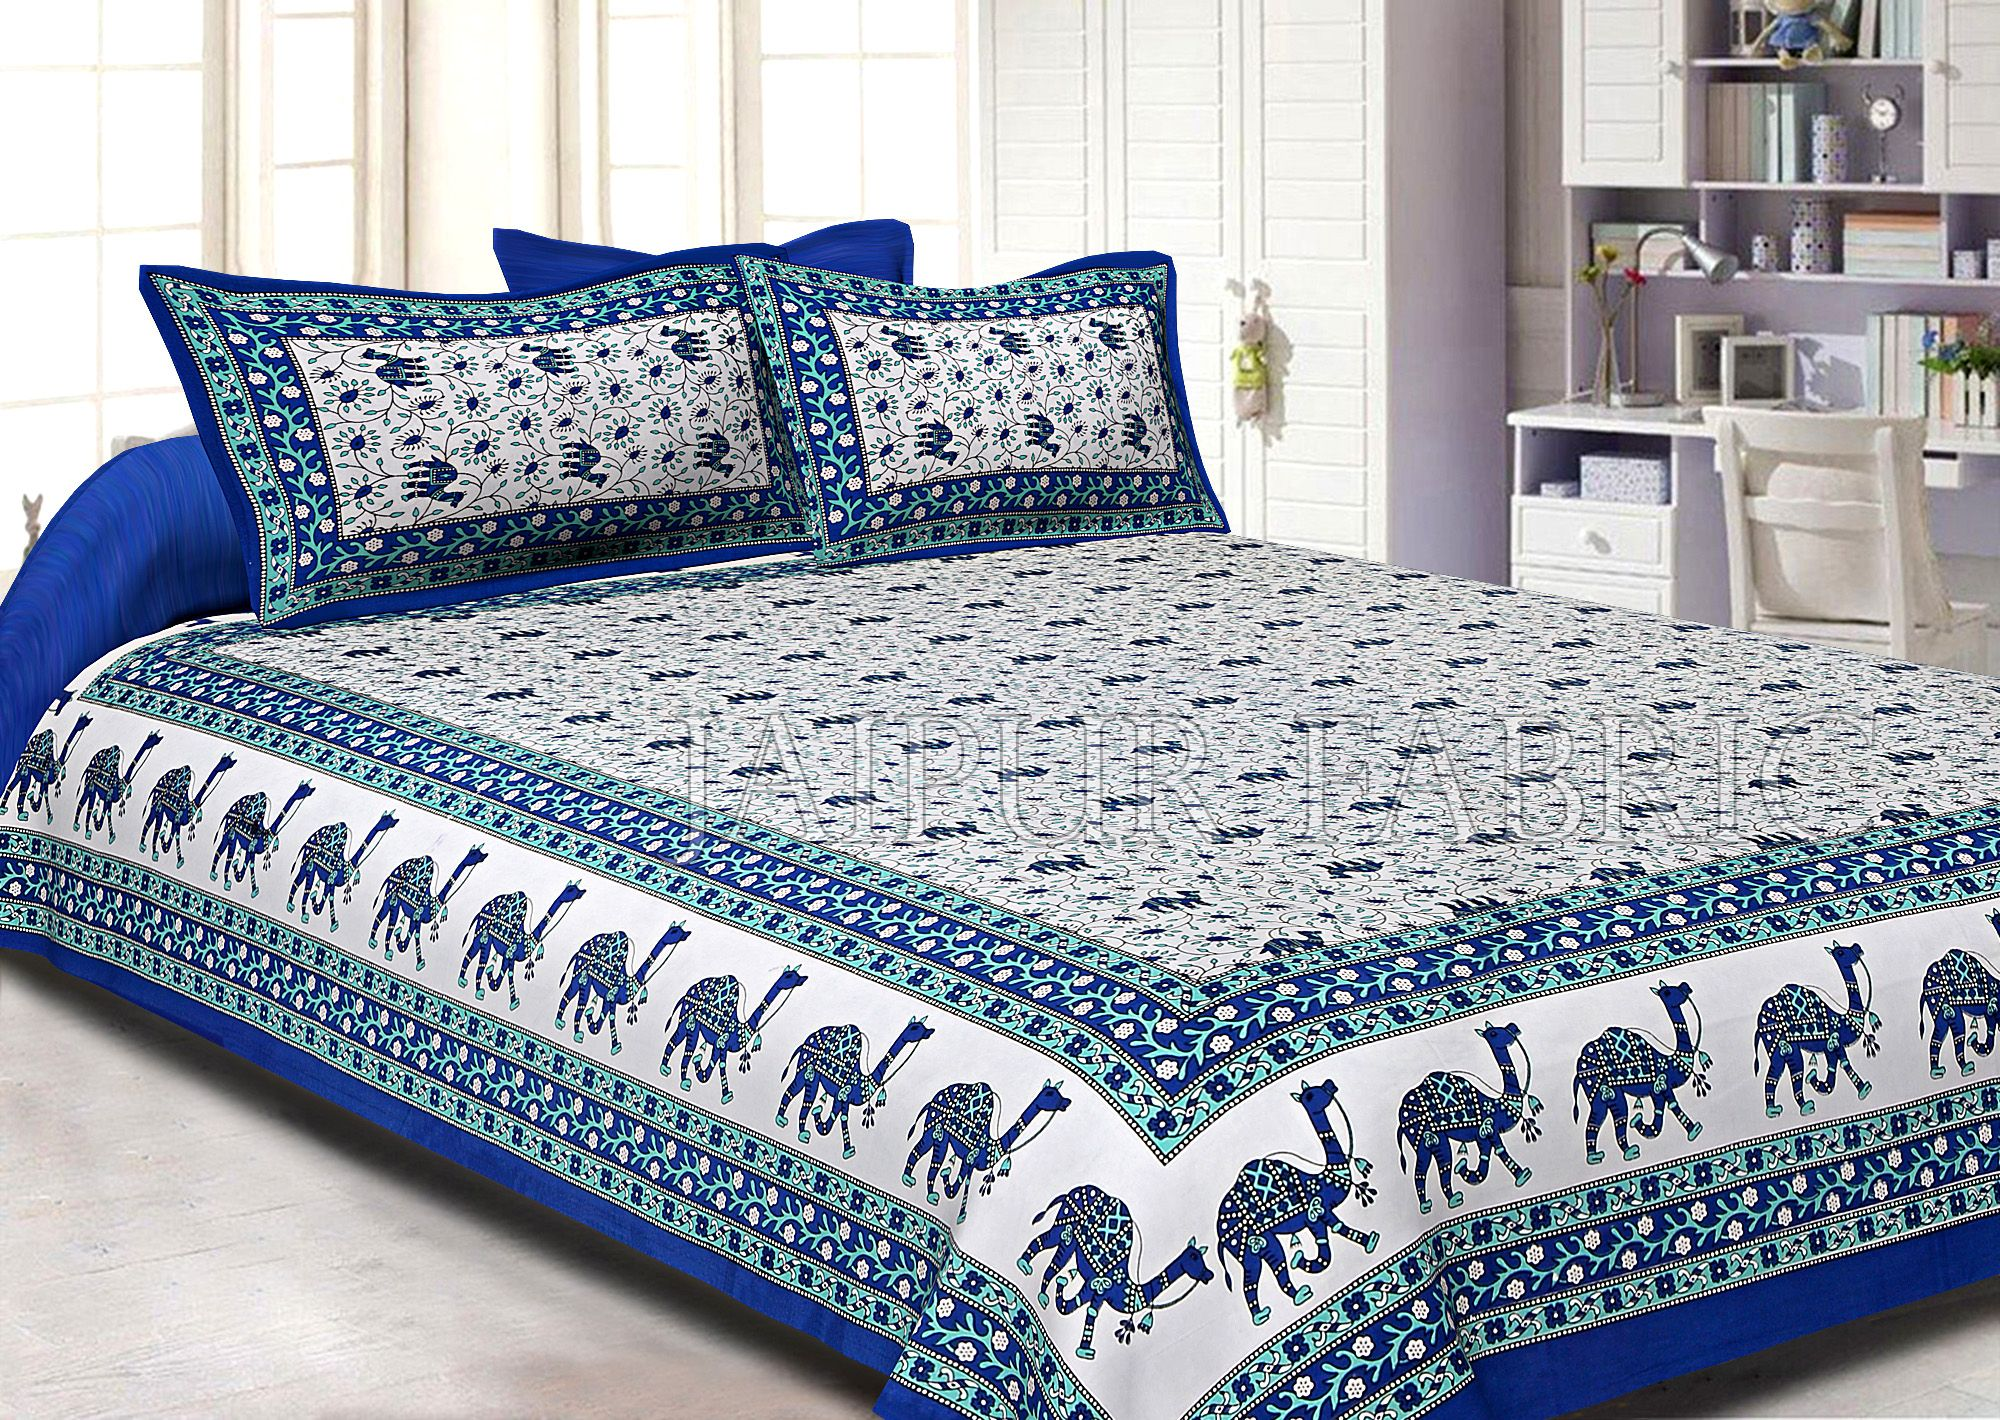 Blue Border Camel Pattern Screen Print Cotton Double Bed Sheet